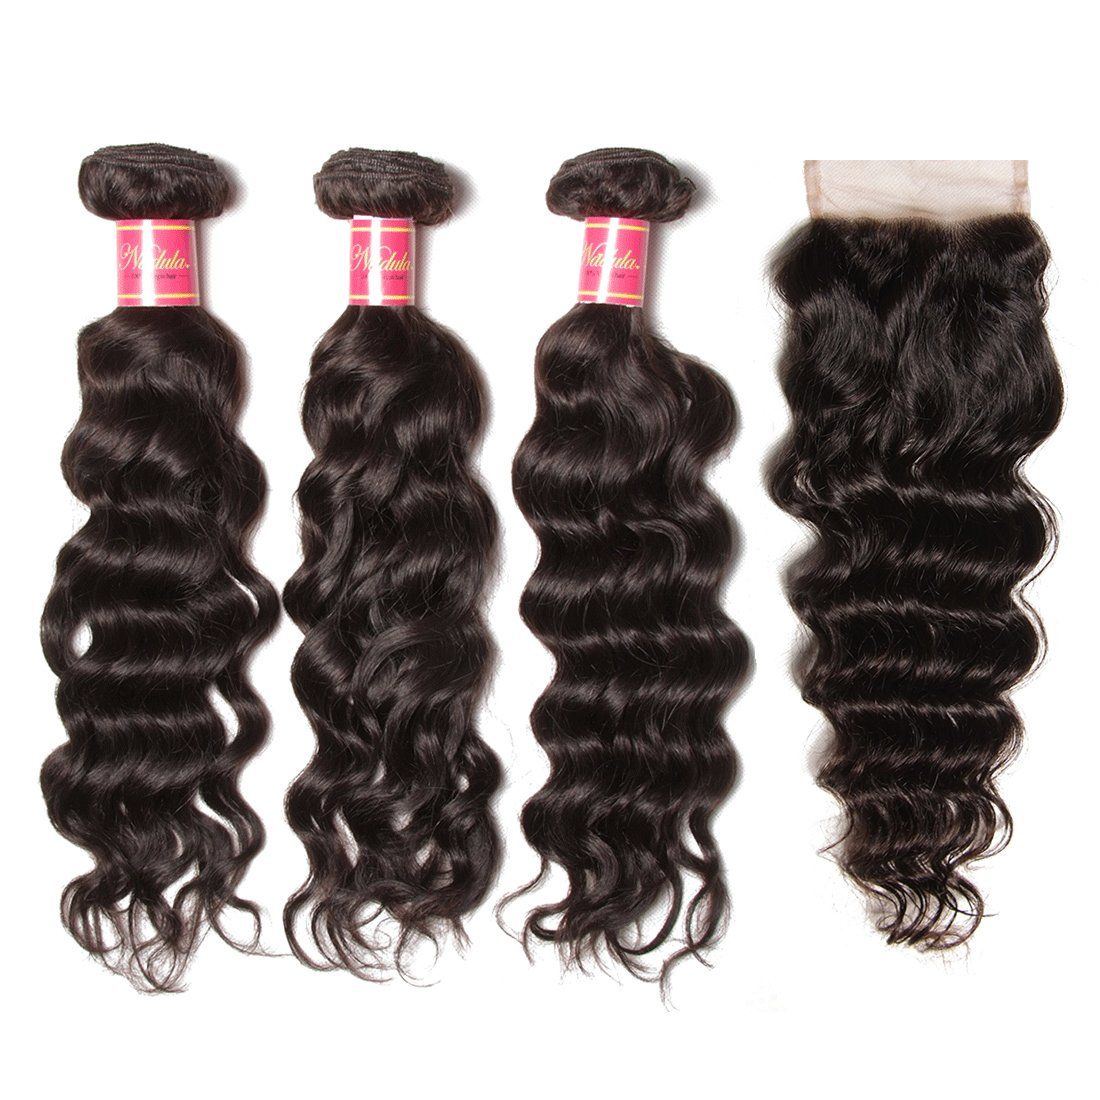 Nadula Brazilian Virgin Hair With Closure Natural Wave Hair Bundles With 4×4 Free Part Lace Closure 7A Brazilian Natural Wave Weave Cheap Remy Human Hair Entension Natural Color (14 16 18+12 Closure)